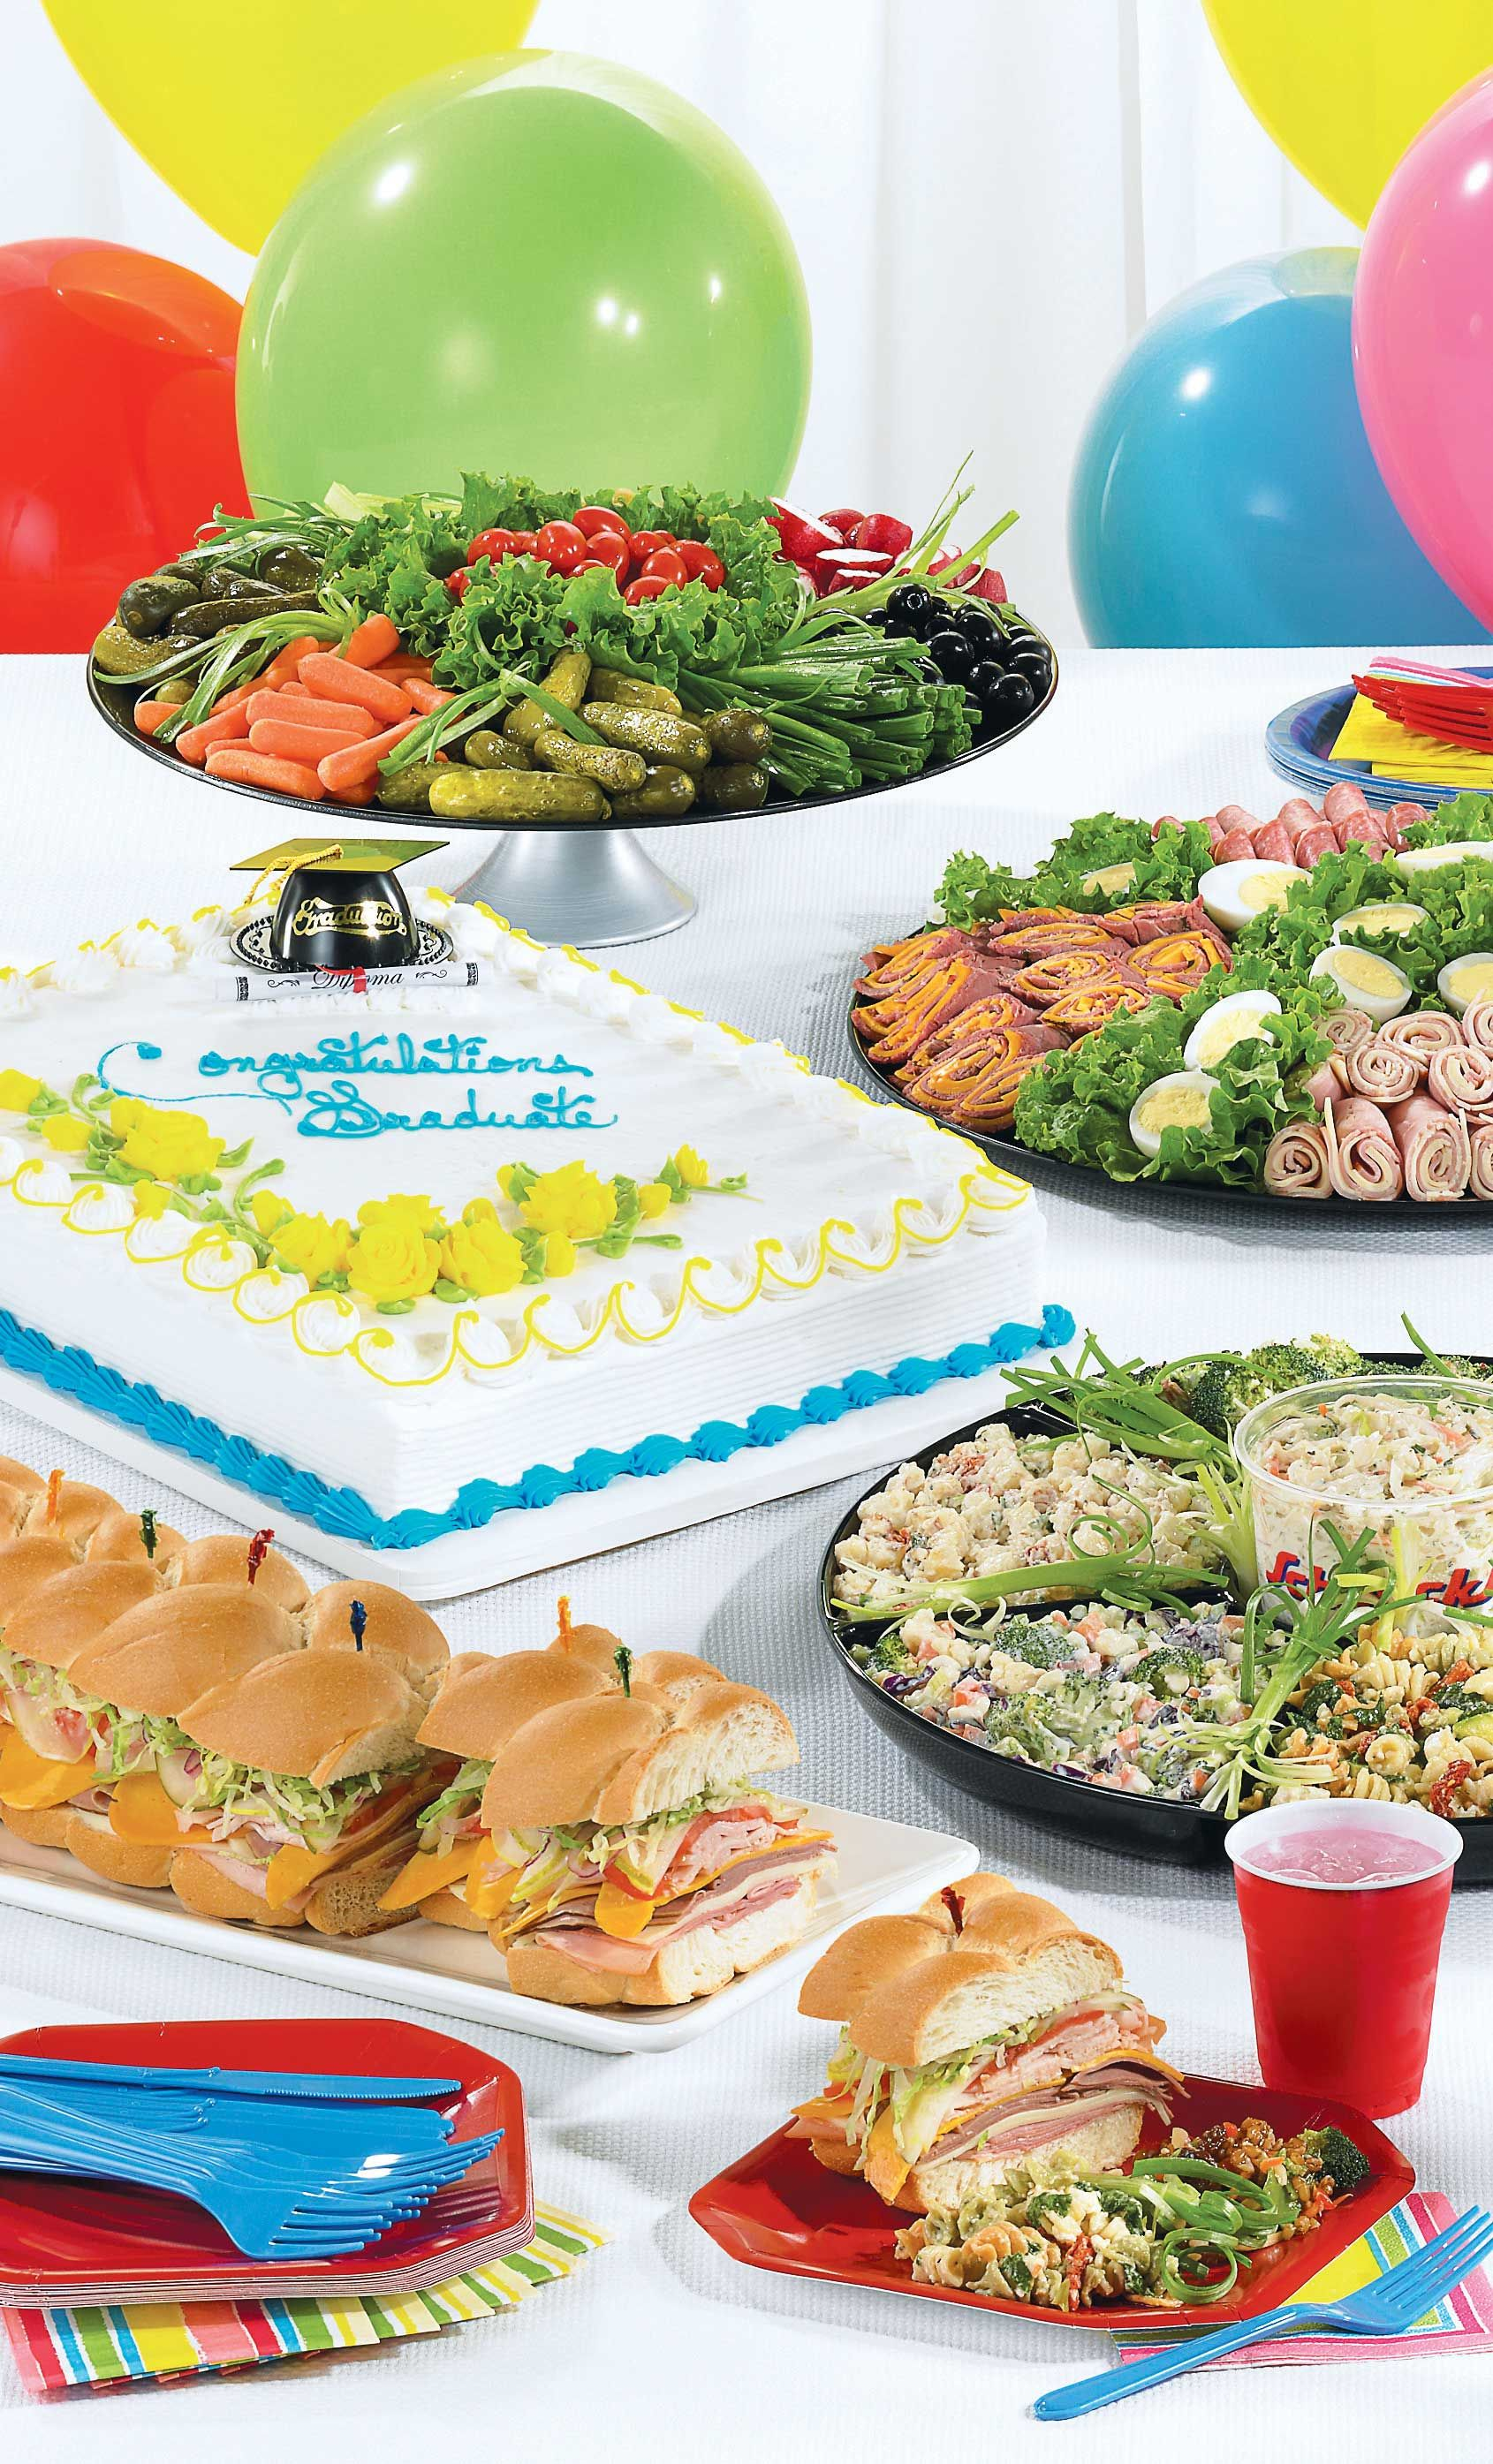 Party Trays #yoyobirthday